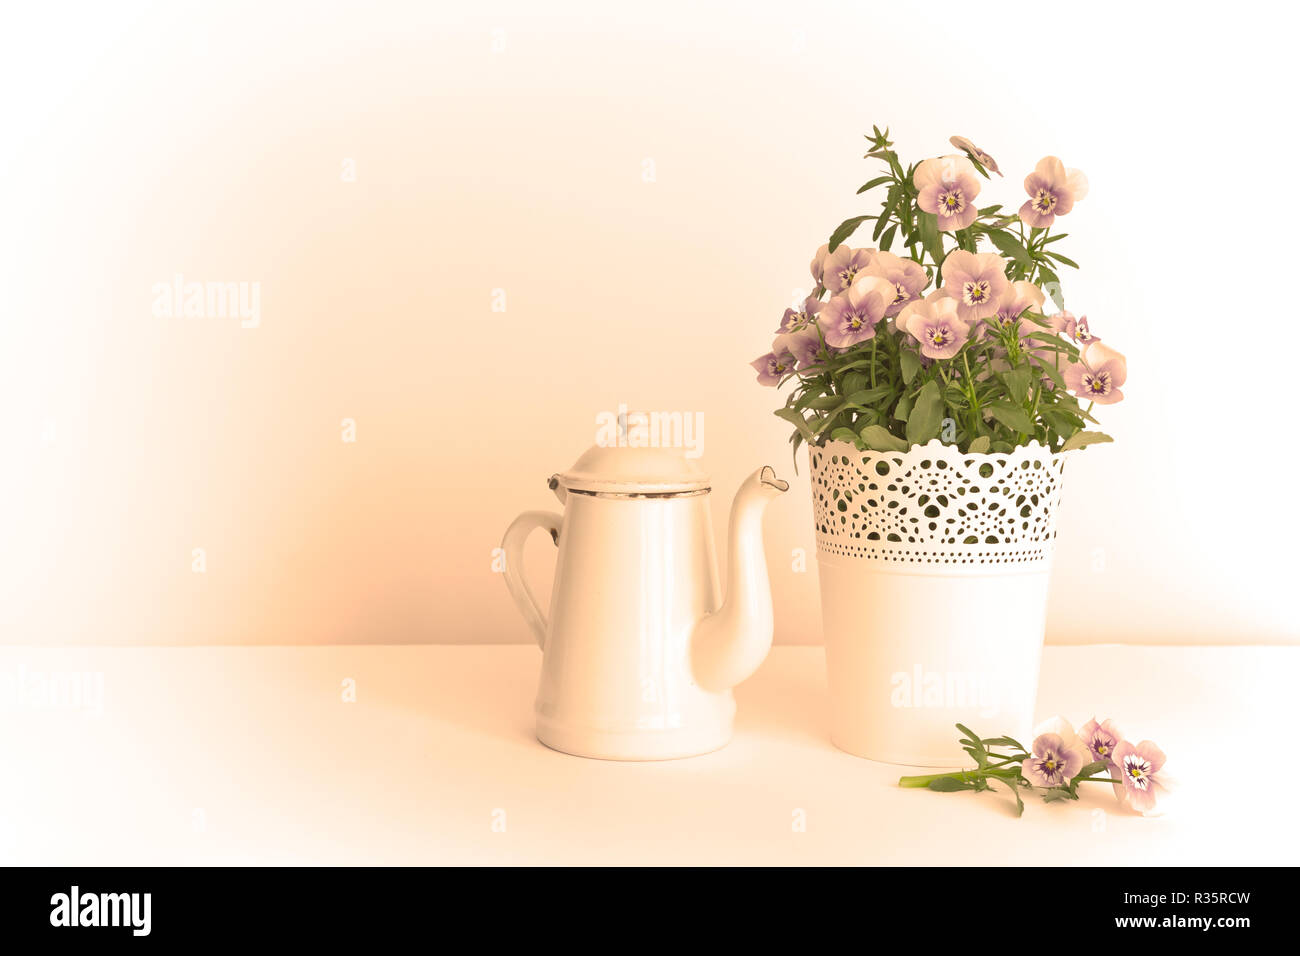 Purple, blue and lilac pansy flowers in a beautiful pot with an enameled jug on white background, copy space, vintage filter effect Stock Photo